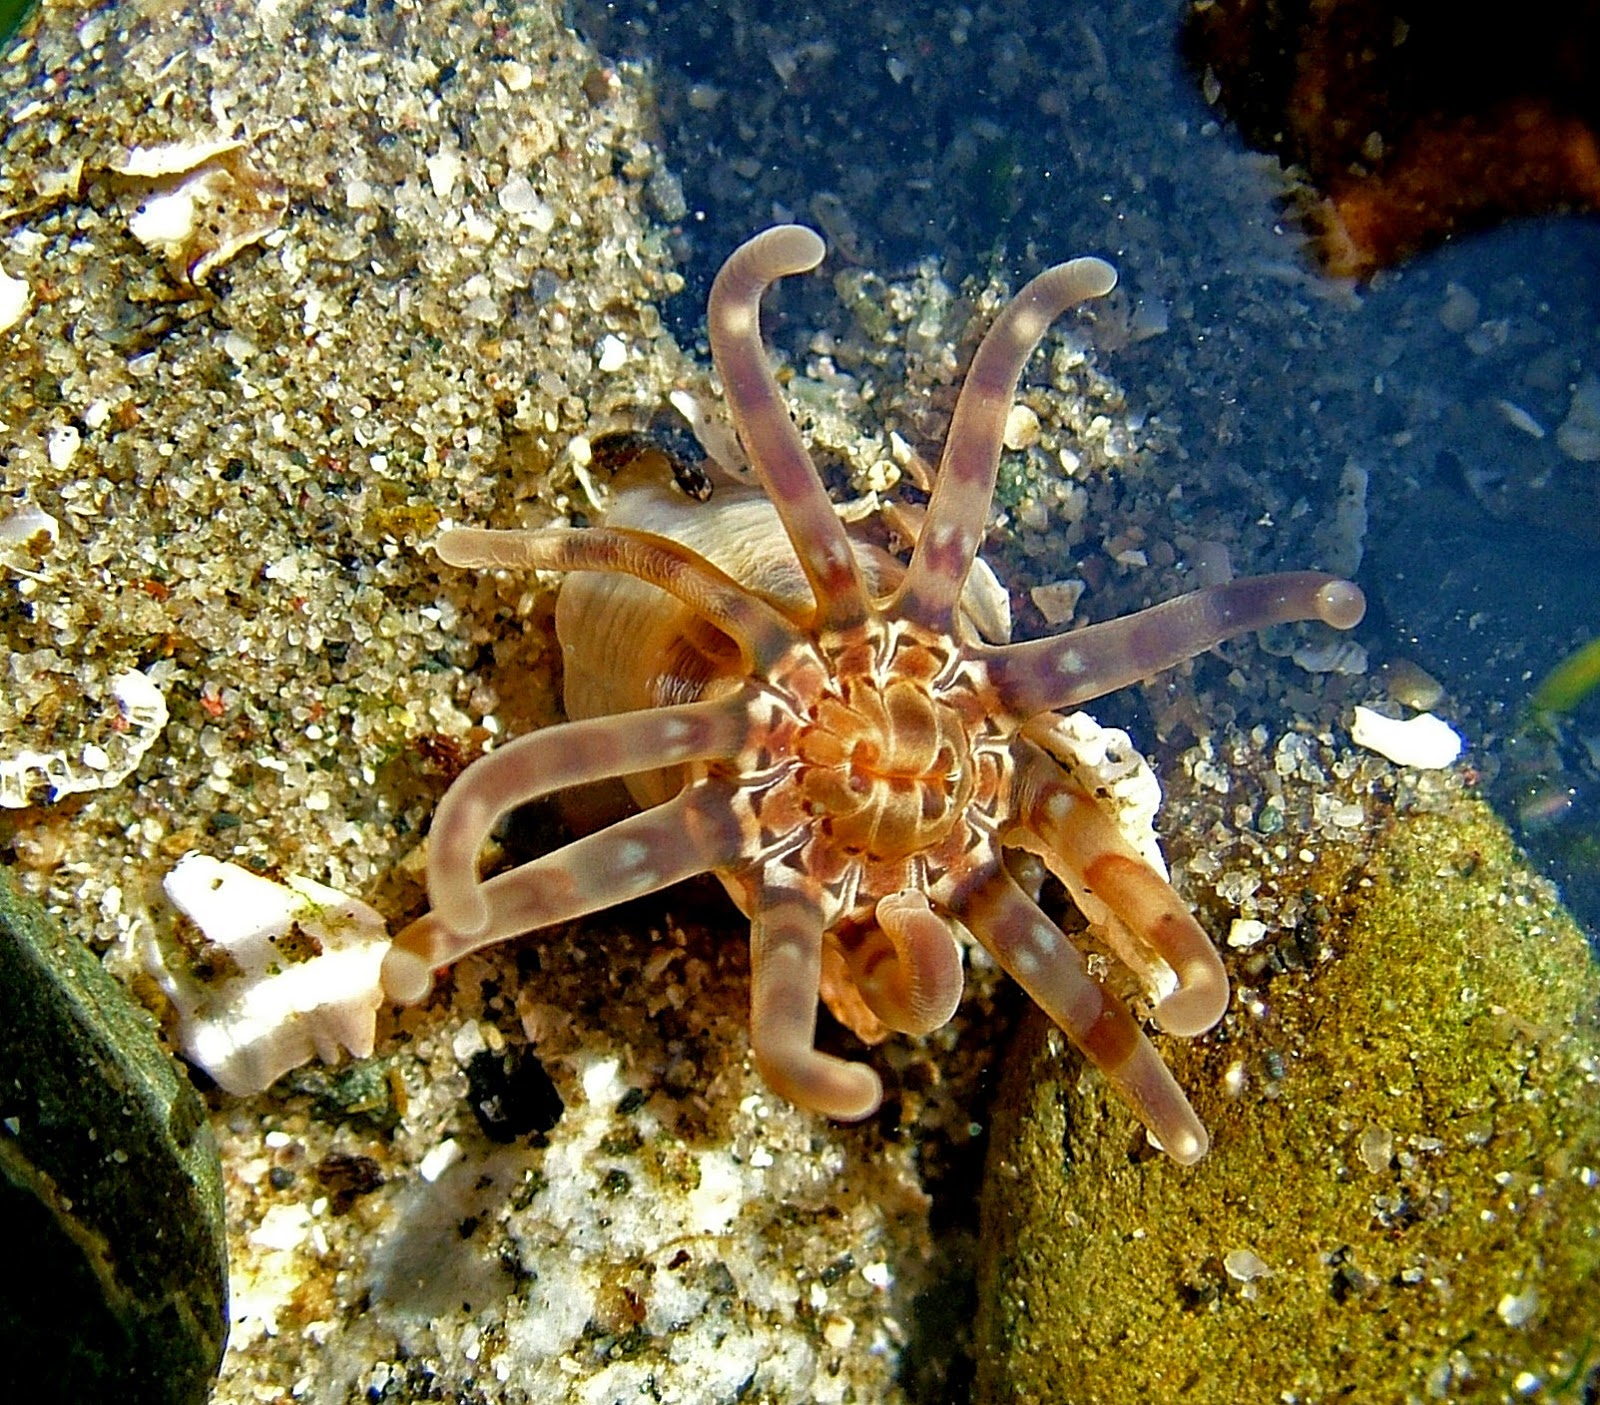 Buzz S Marine Life Of Puget Sound Random Collection Of